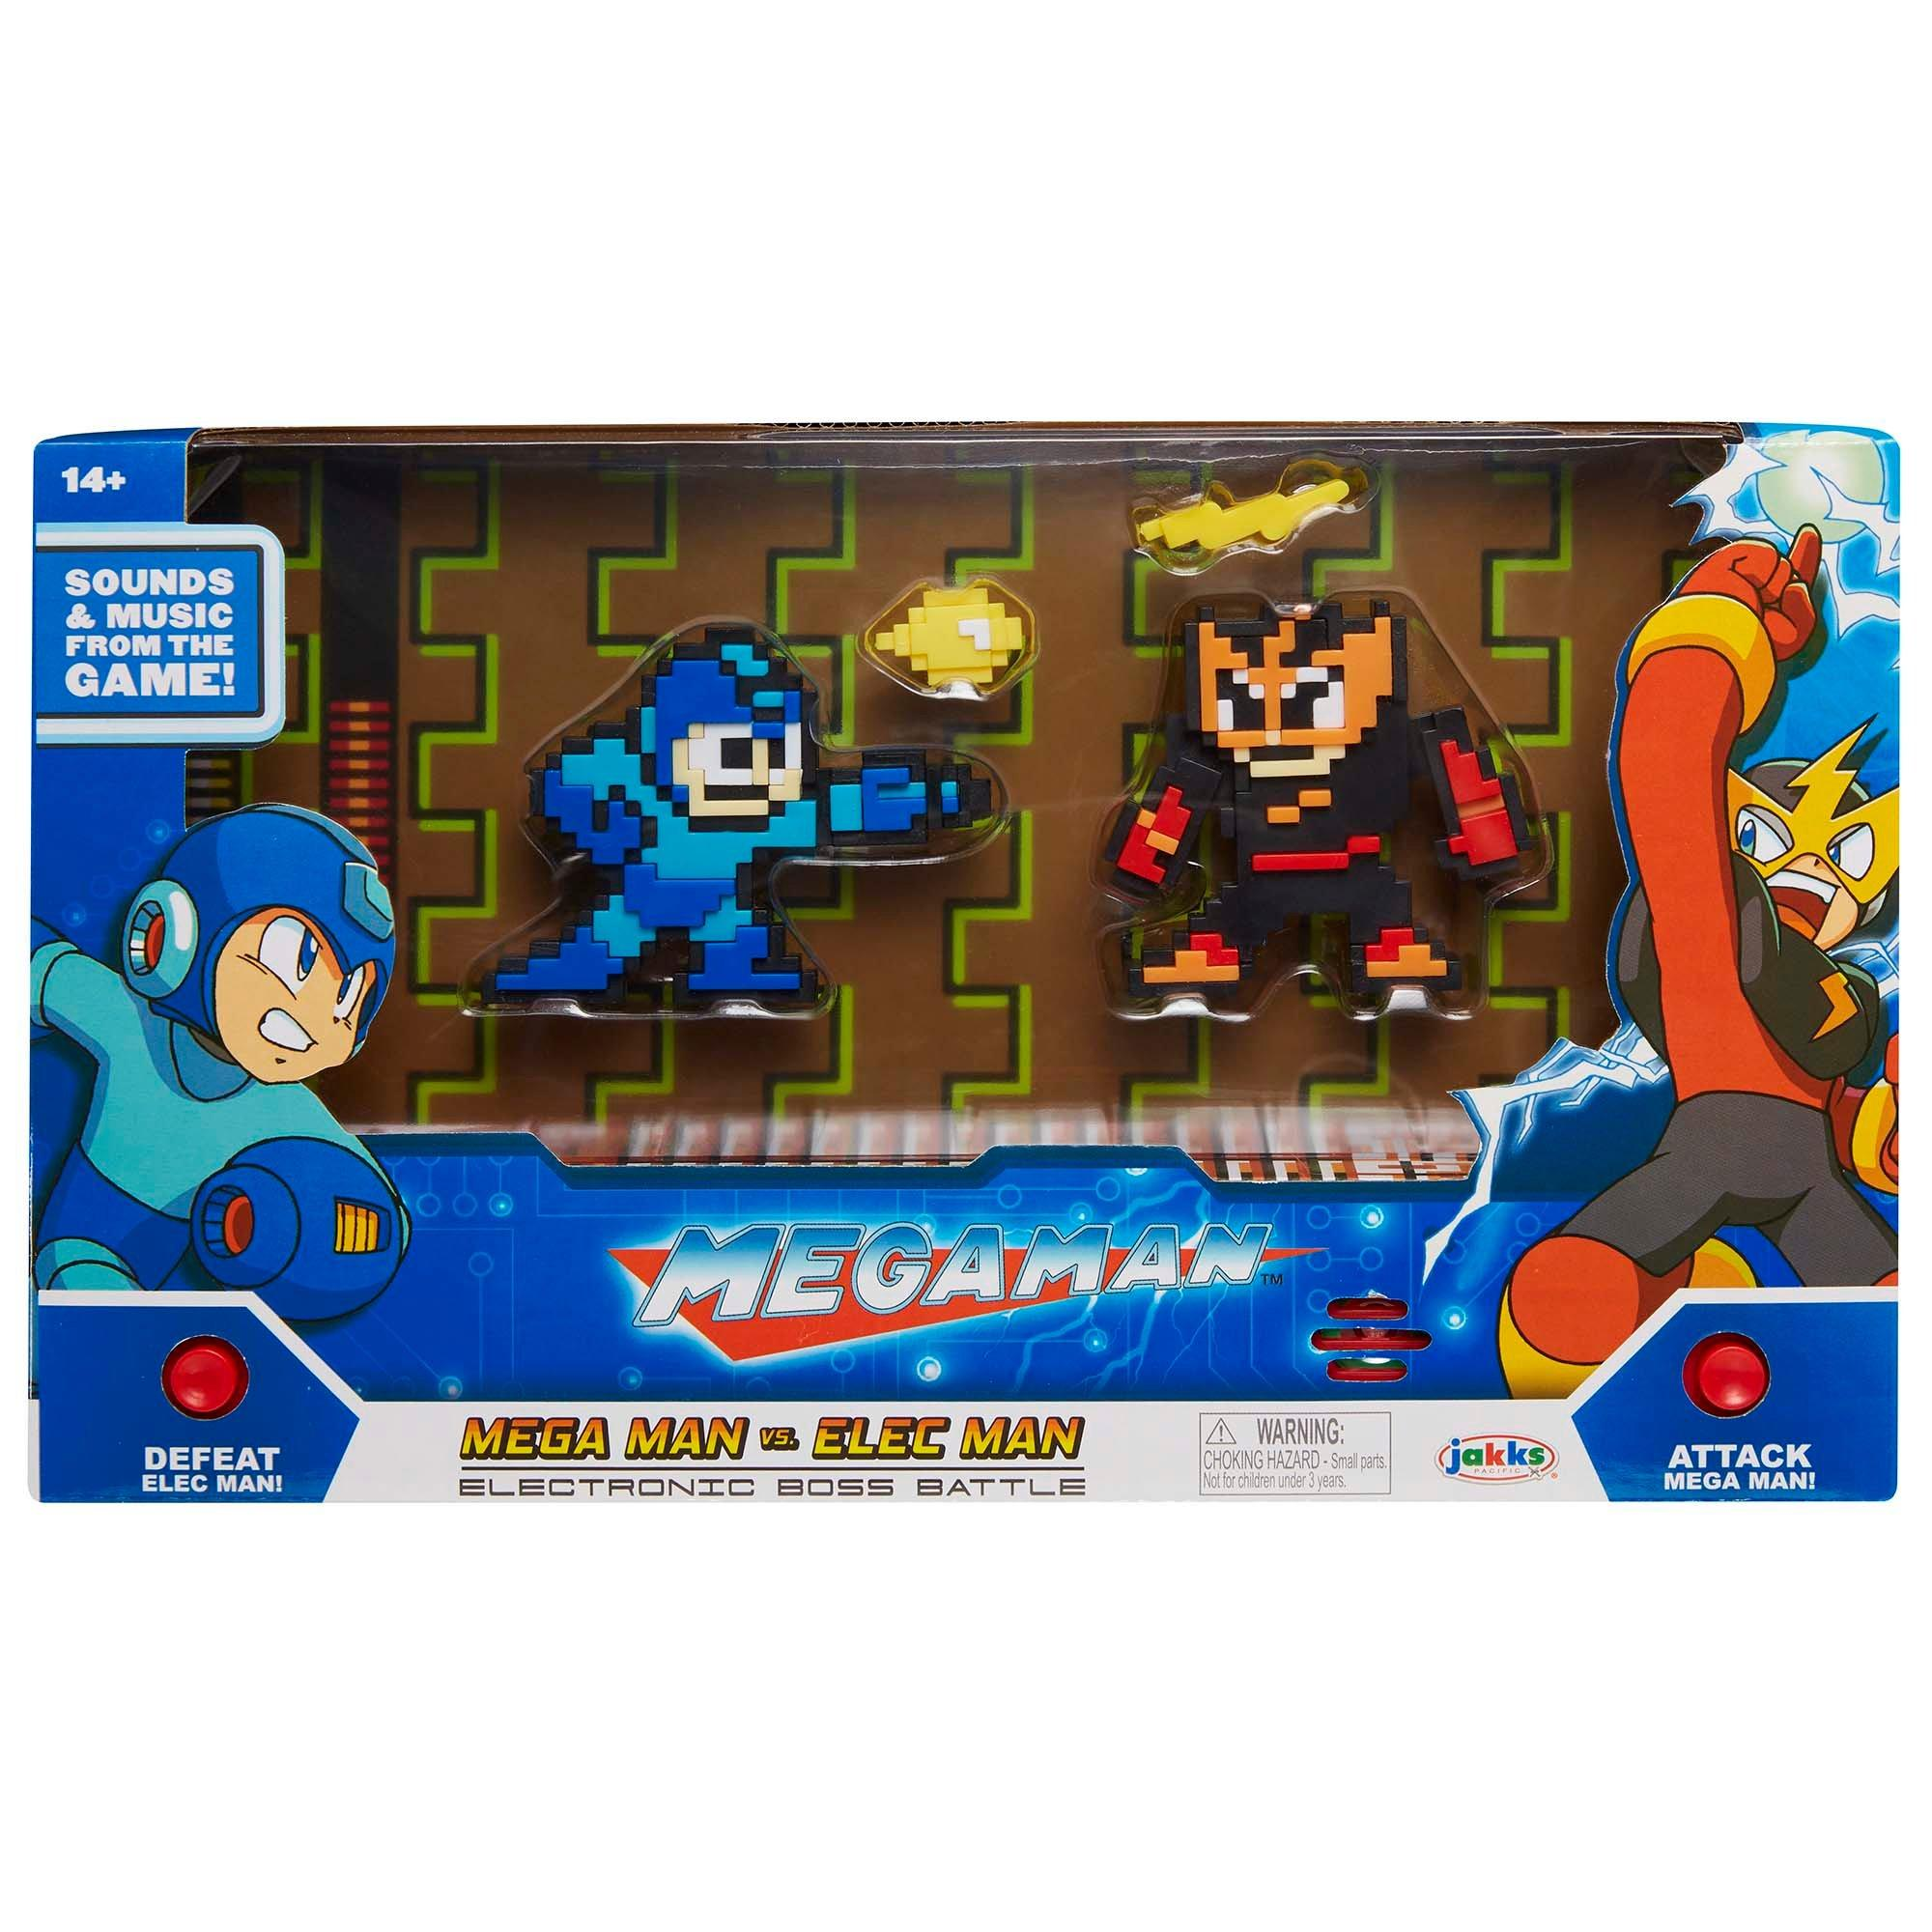 2019 Ausverkauf UK-Shop Schuhwerk Mega Man: Mega Man Vs Elec Man Electronic Boss Battle Summer Convention  2019 Only at GameStop | GameStop